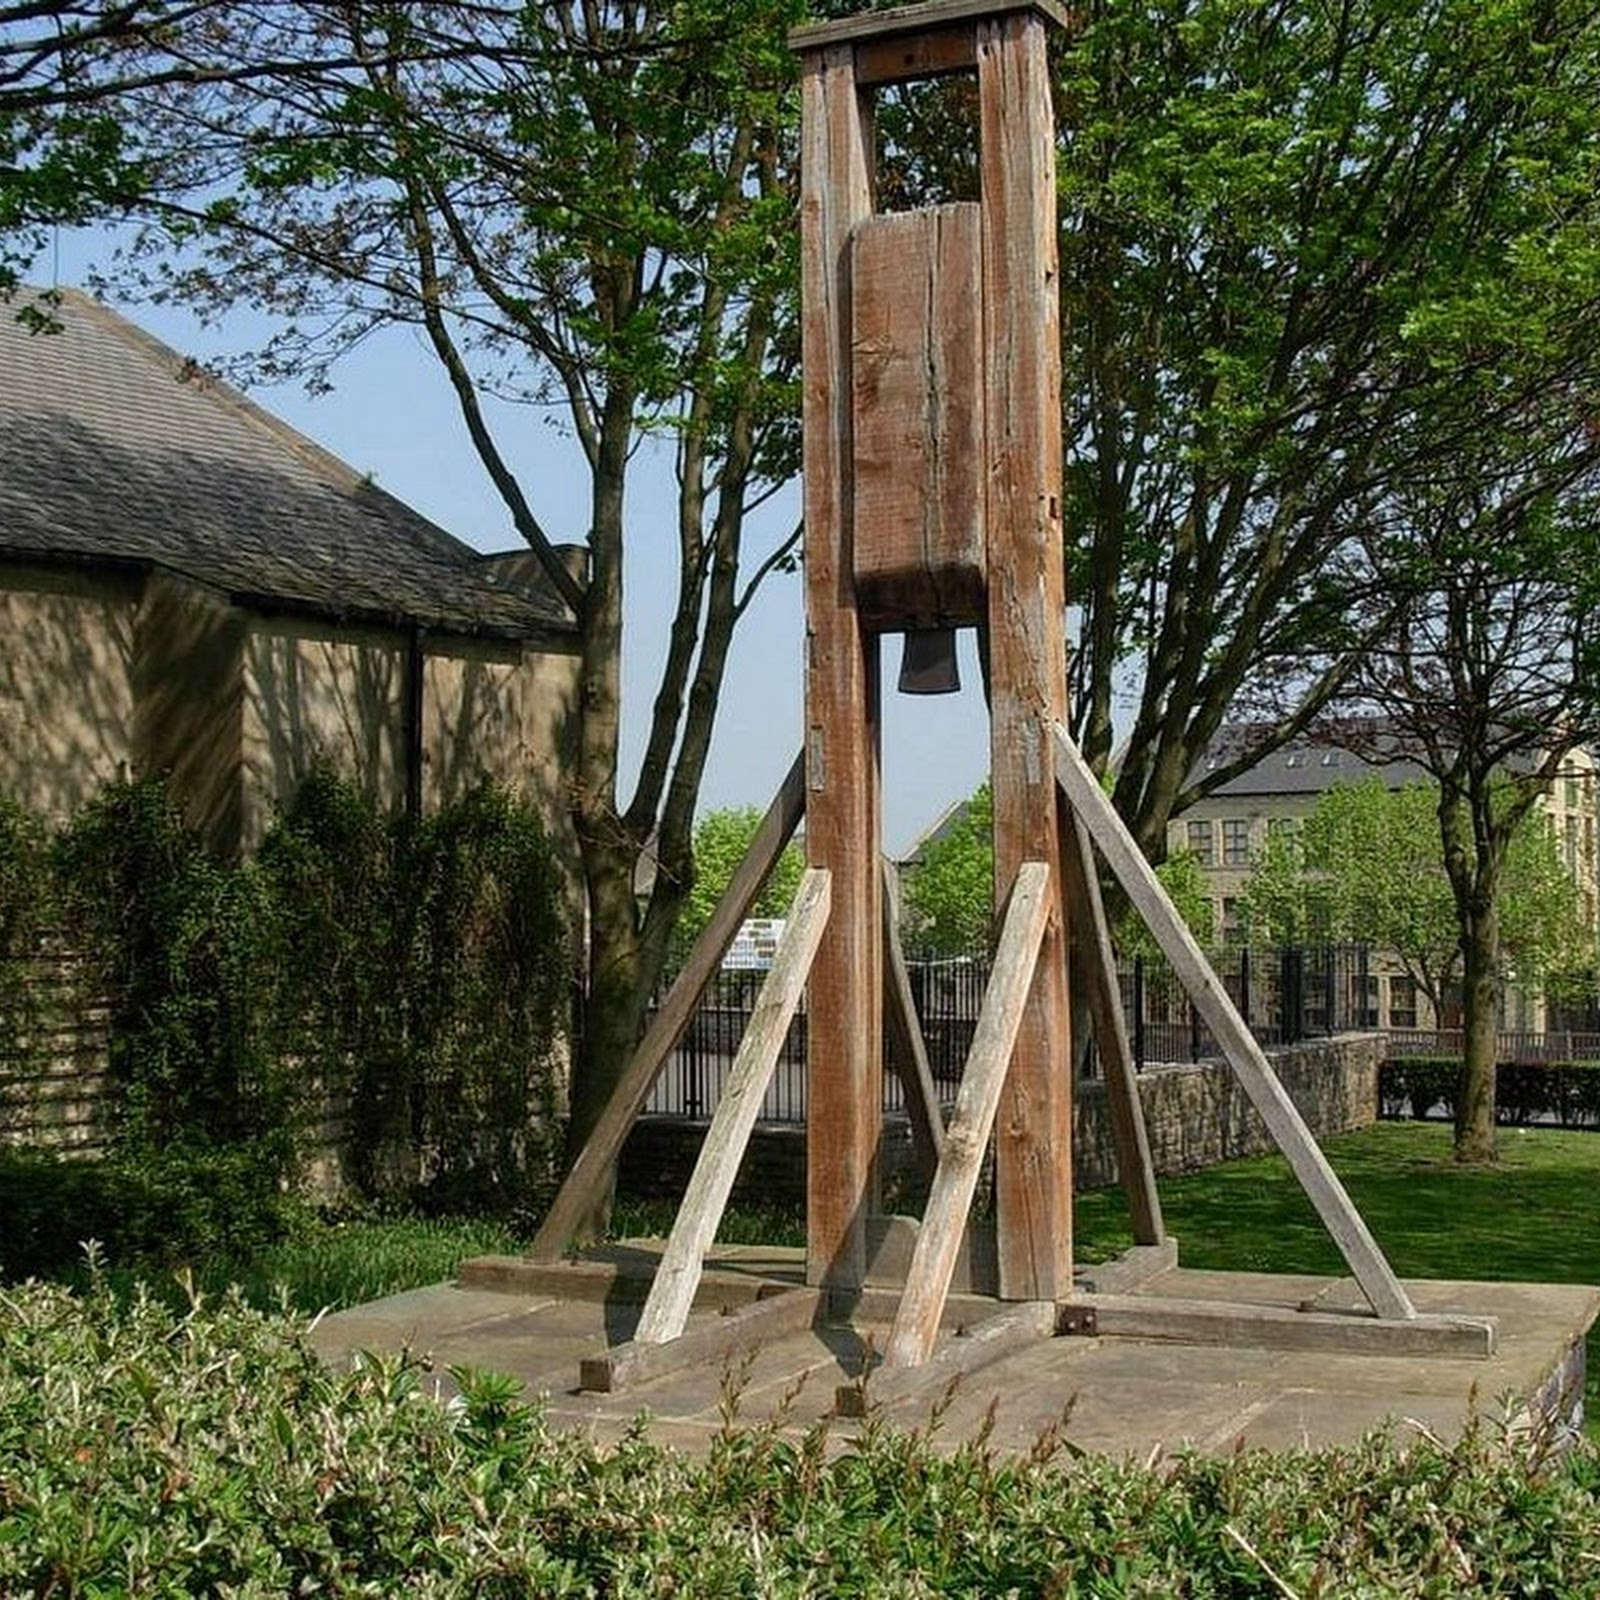 Halifax Gibbet: The Infamous Forerunner To The Guillotine